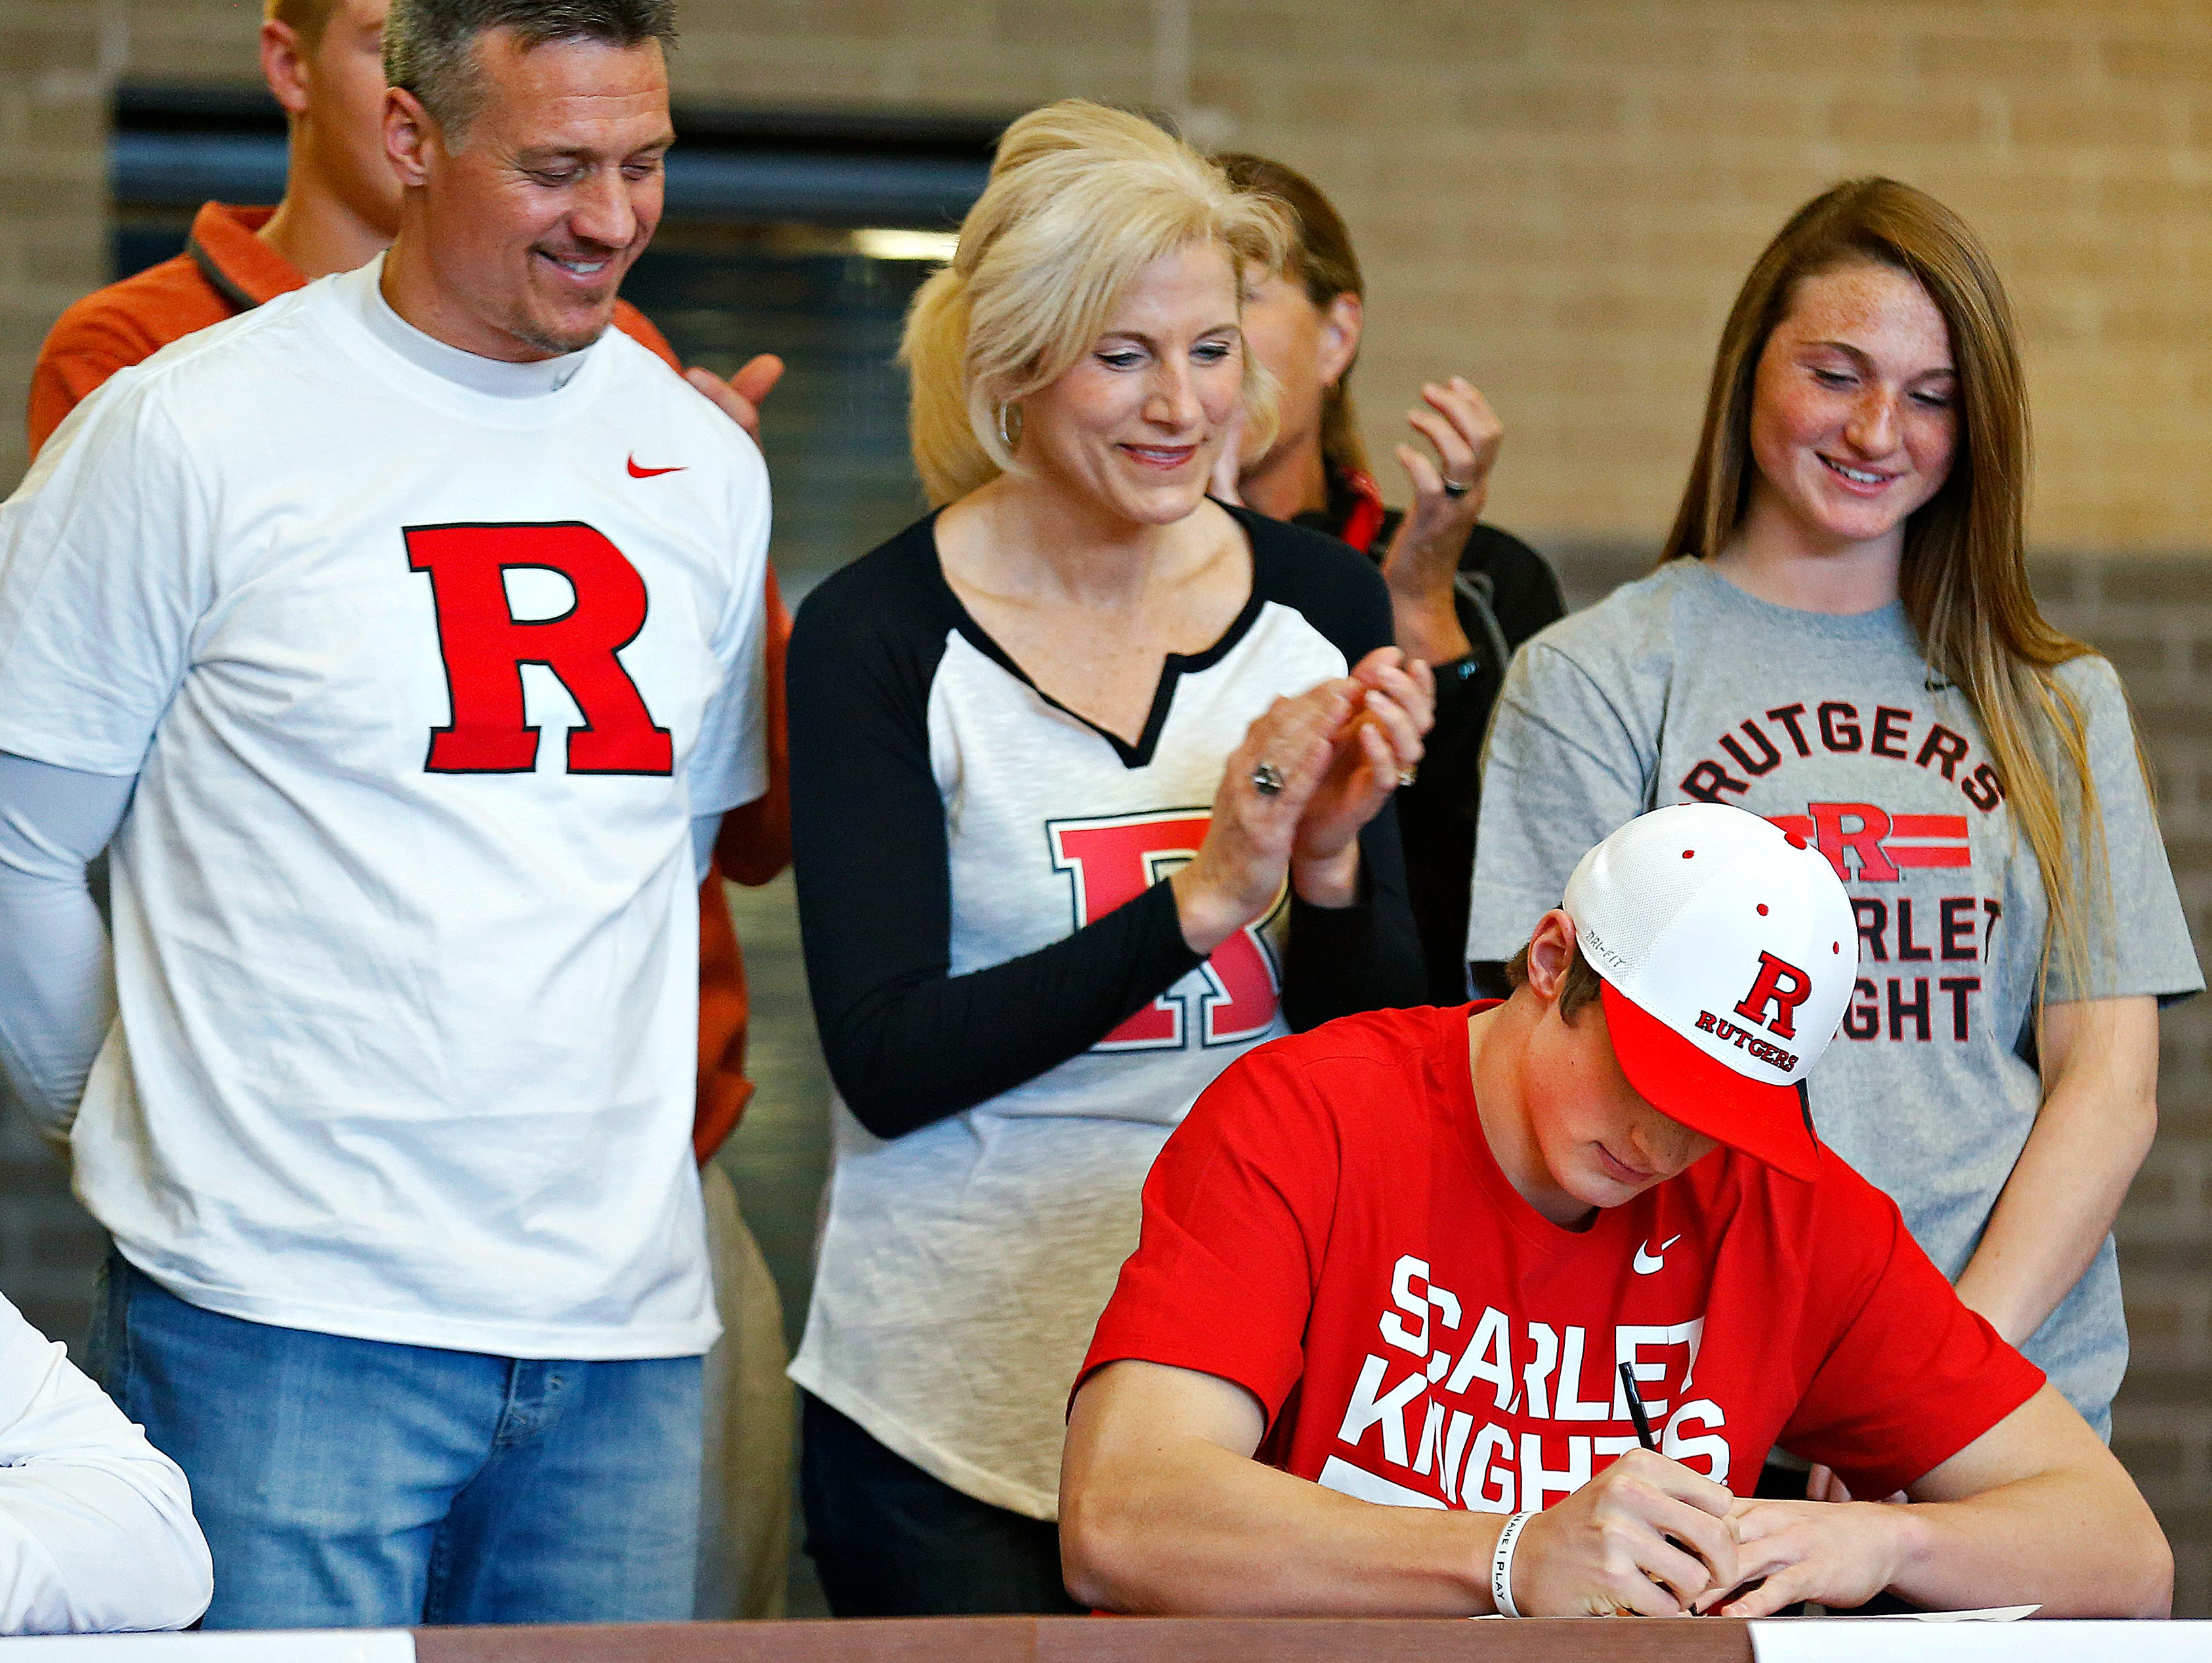 Travis Vokolek signs a national letter of intent to Rutgers University during a National Signing Day ceremony held at Kickapoo High School in Springfield, Mo. on Feb. 1, 2017.